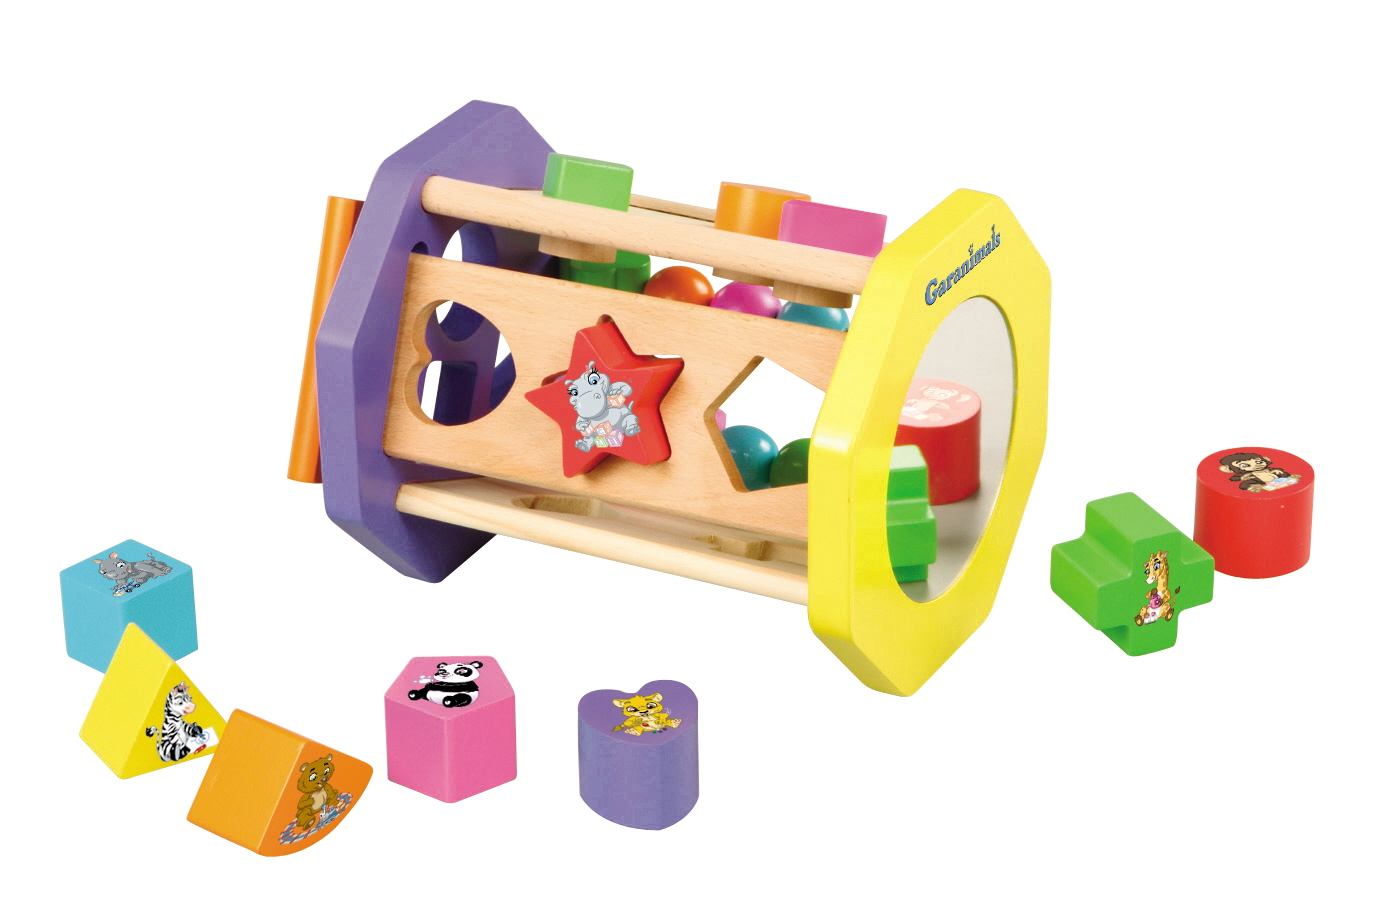 Preschool Learning Toys : Babies preschool toys